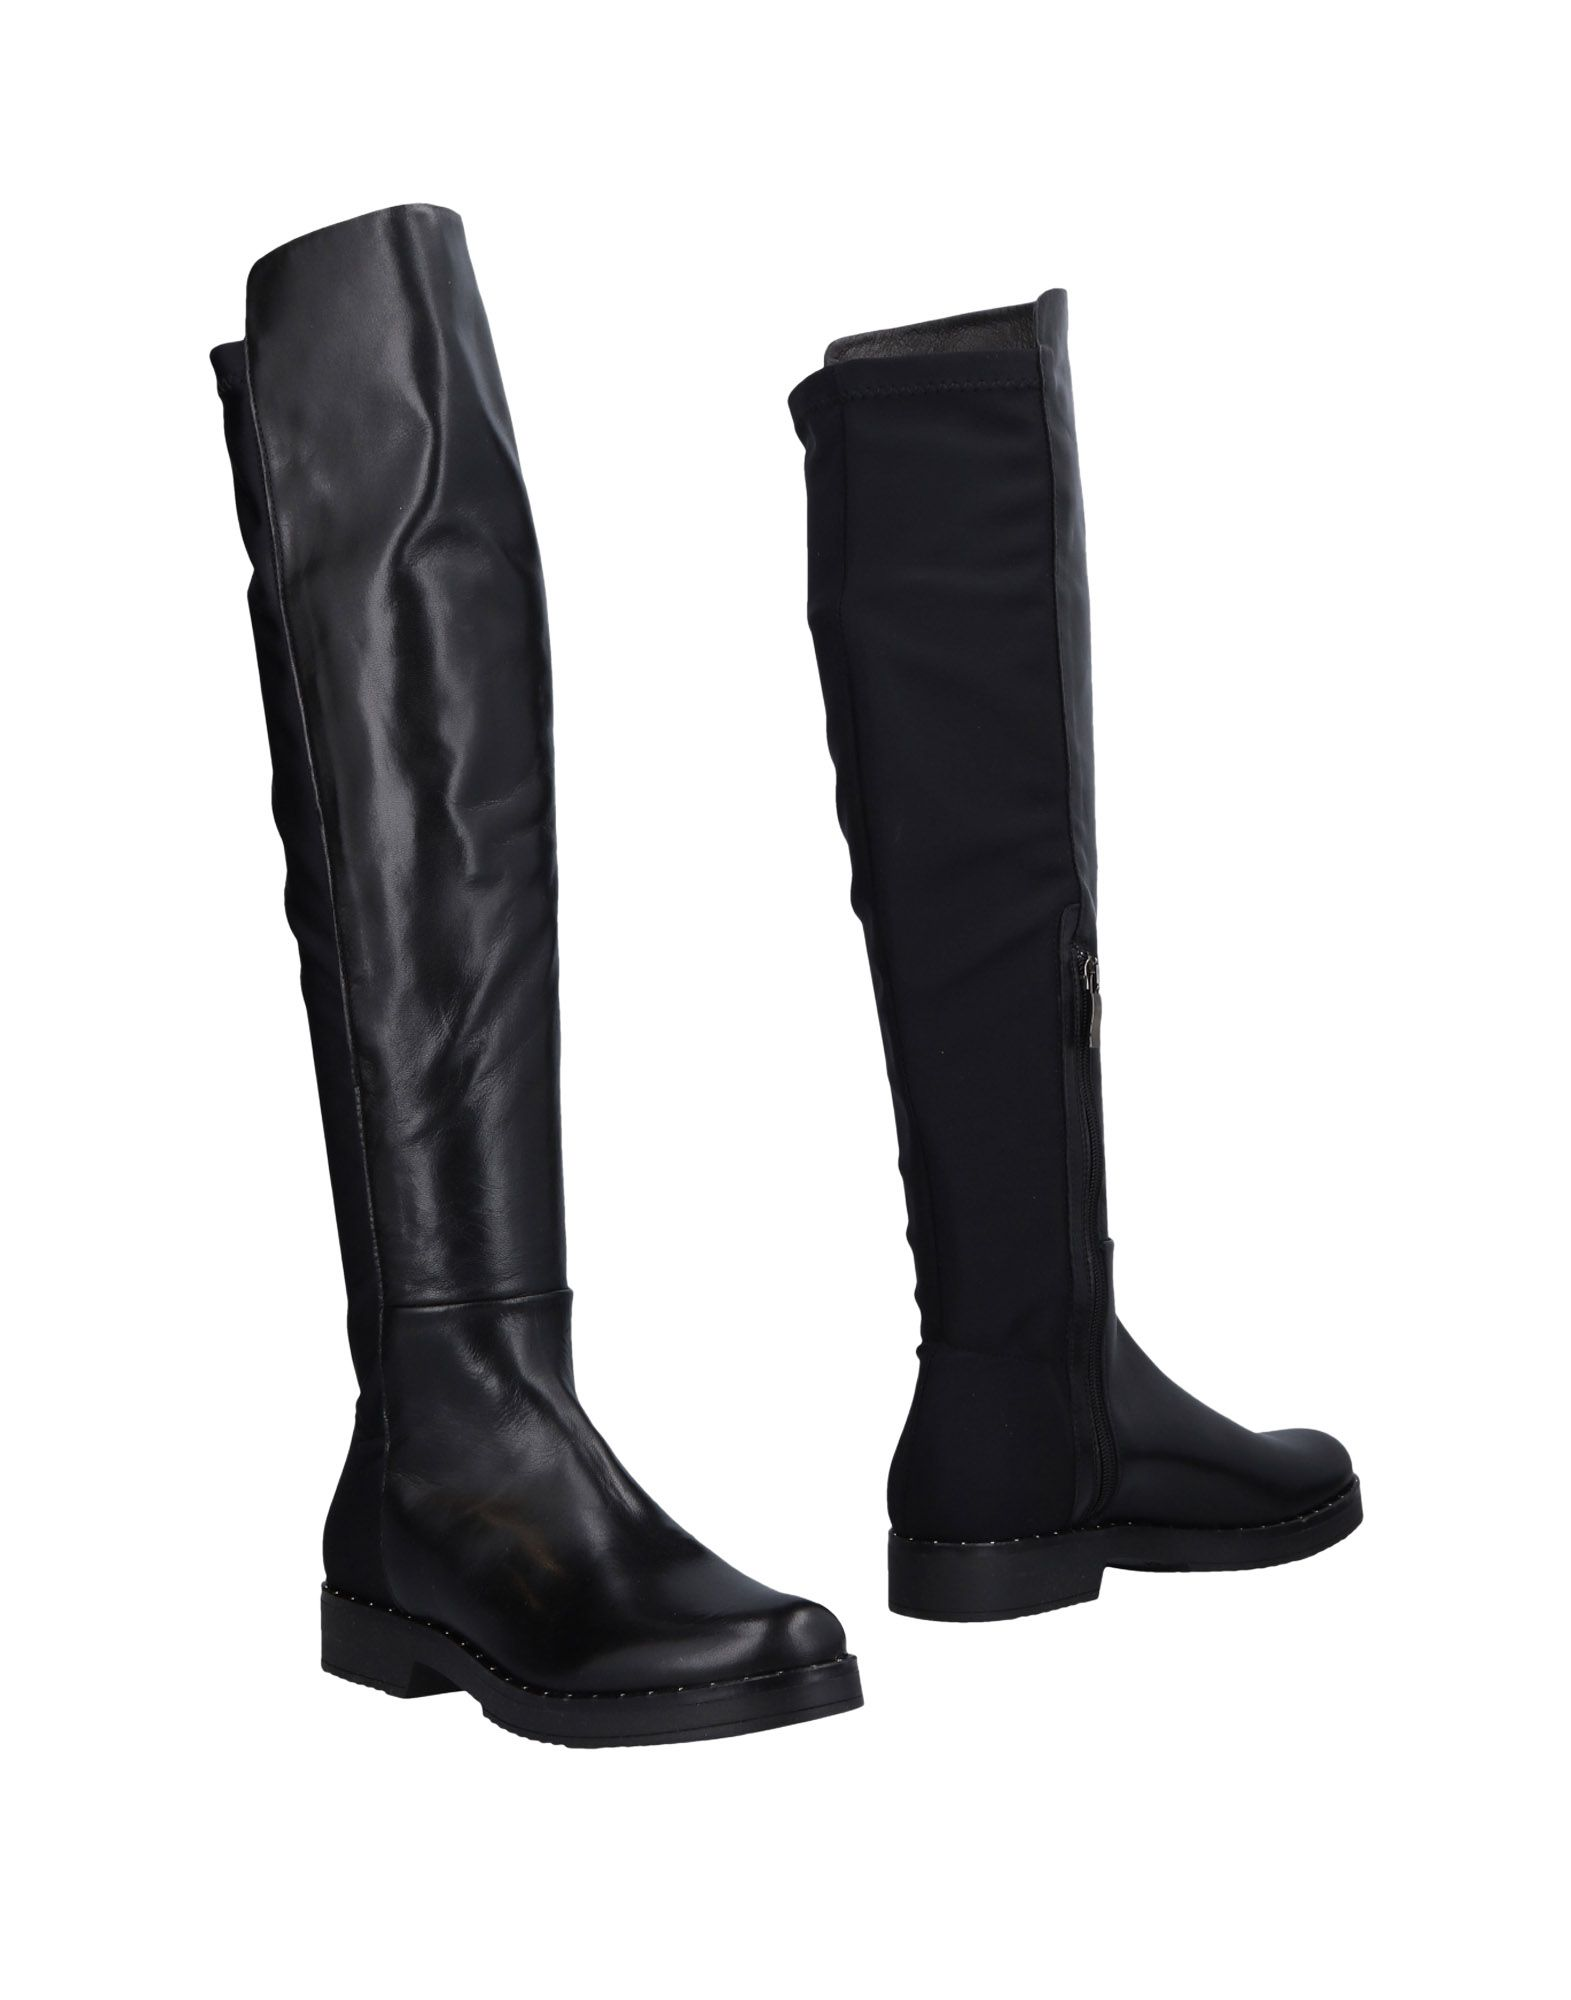 Mally Boots online - Women Mally Boots online Boots on  United Kingdom - 11474199QM 711630